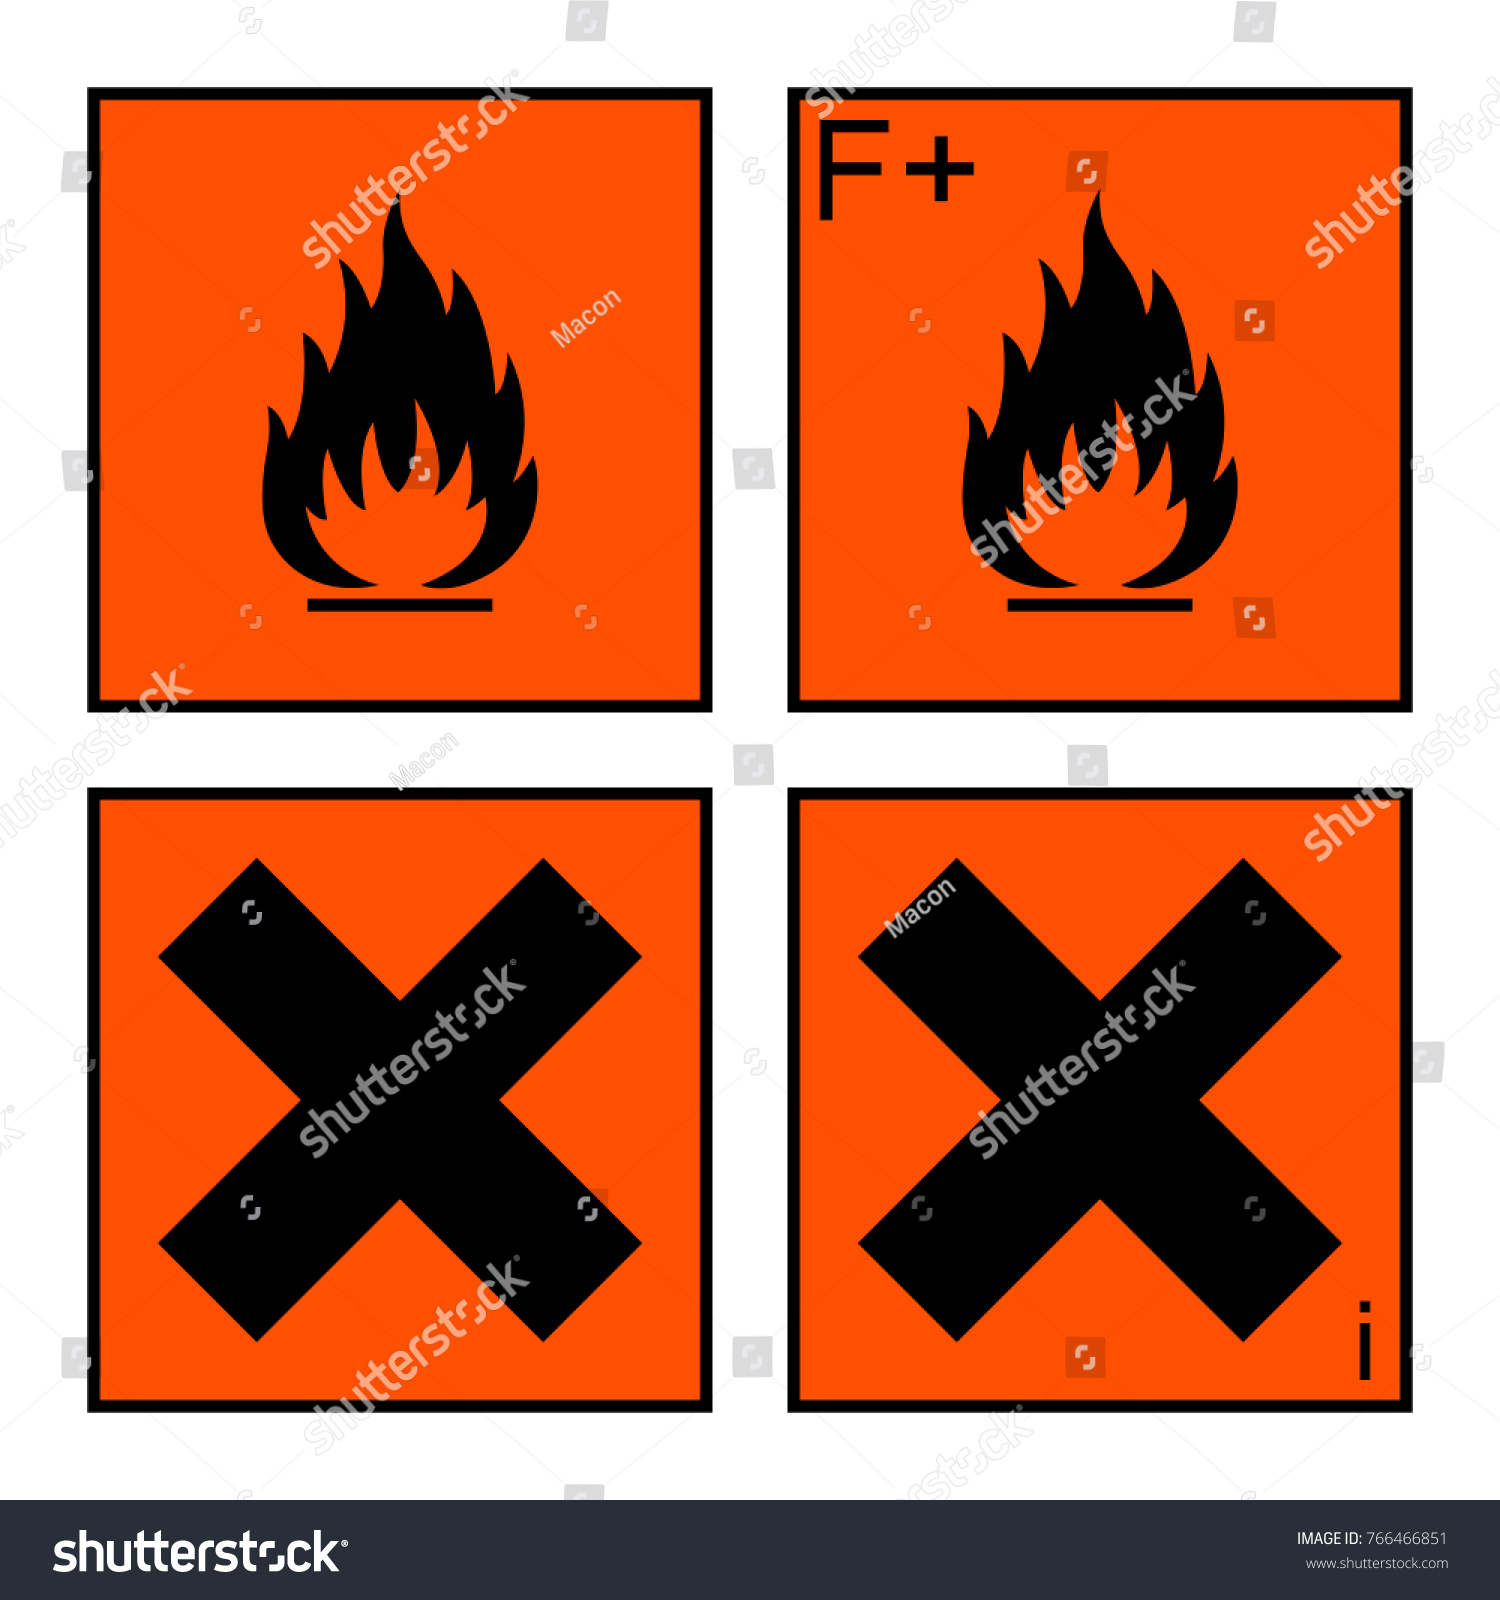 Extremely flammable harmful sign symbol on stock illustration extremely flammable harmful sign symbol on stock illustration 766466851 shutterstock biocorpaavc Gallery